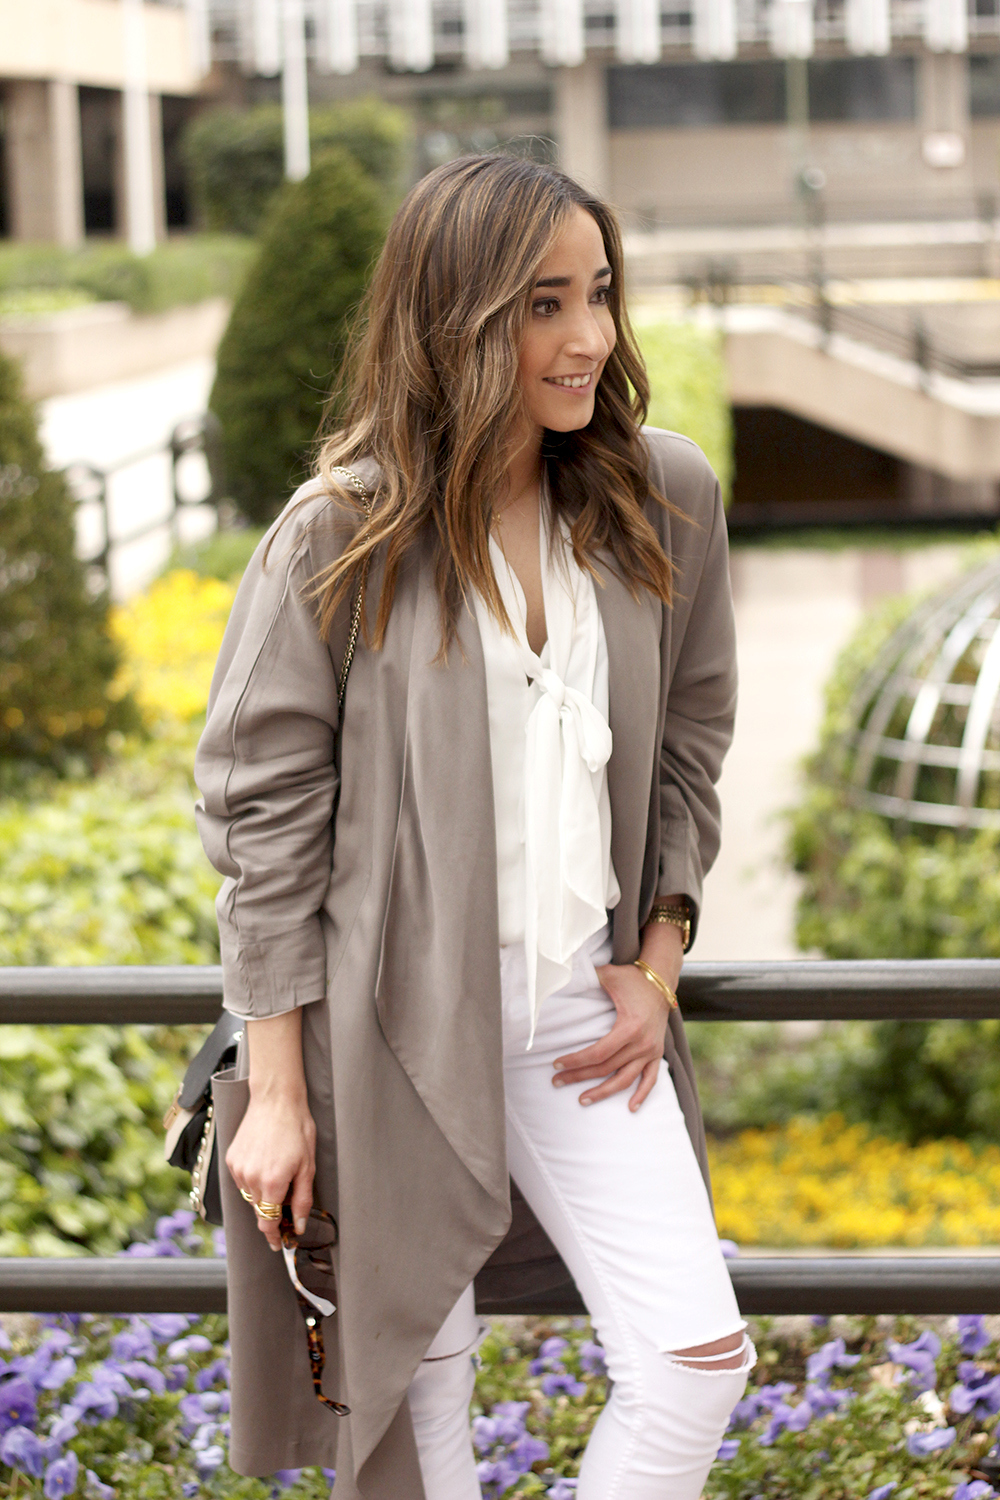 grey and white outfit trench spring streetstyle sunnies nude heels ripped jeans18